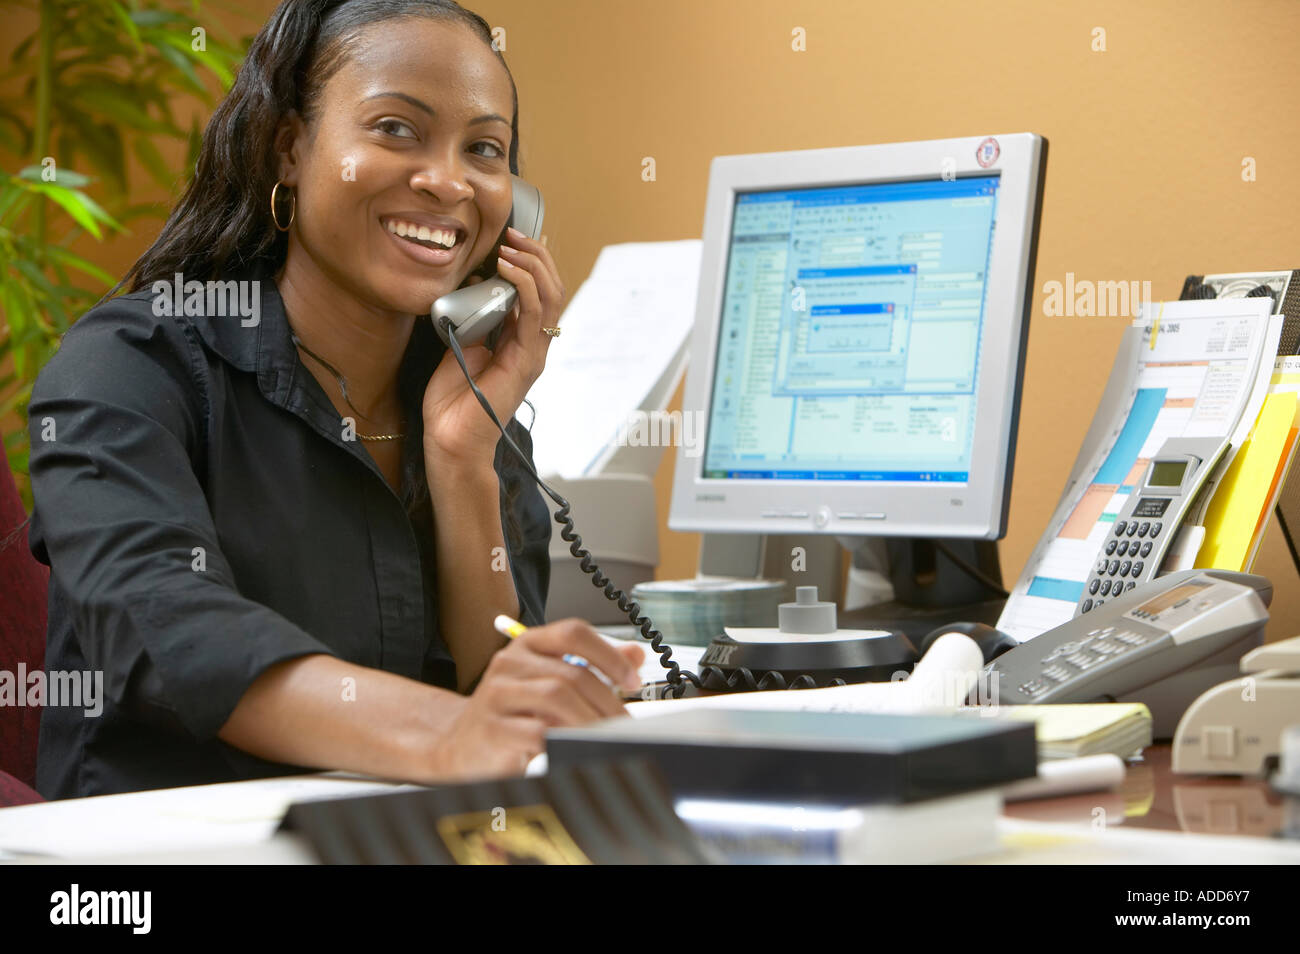 Late 20's African American female at desk in office setting smiling and talking on phone ; computer screen on desk - Stock Image